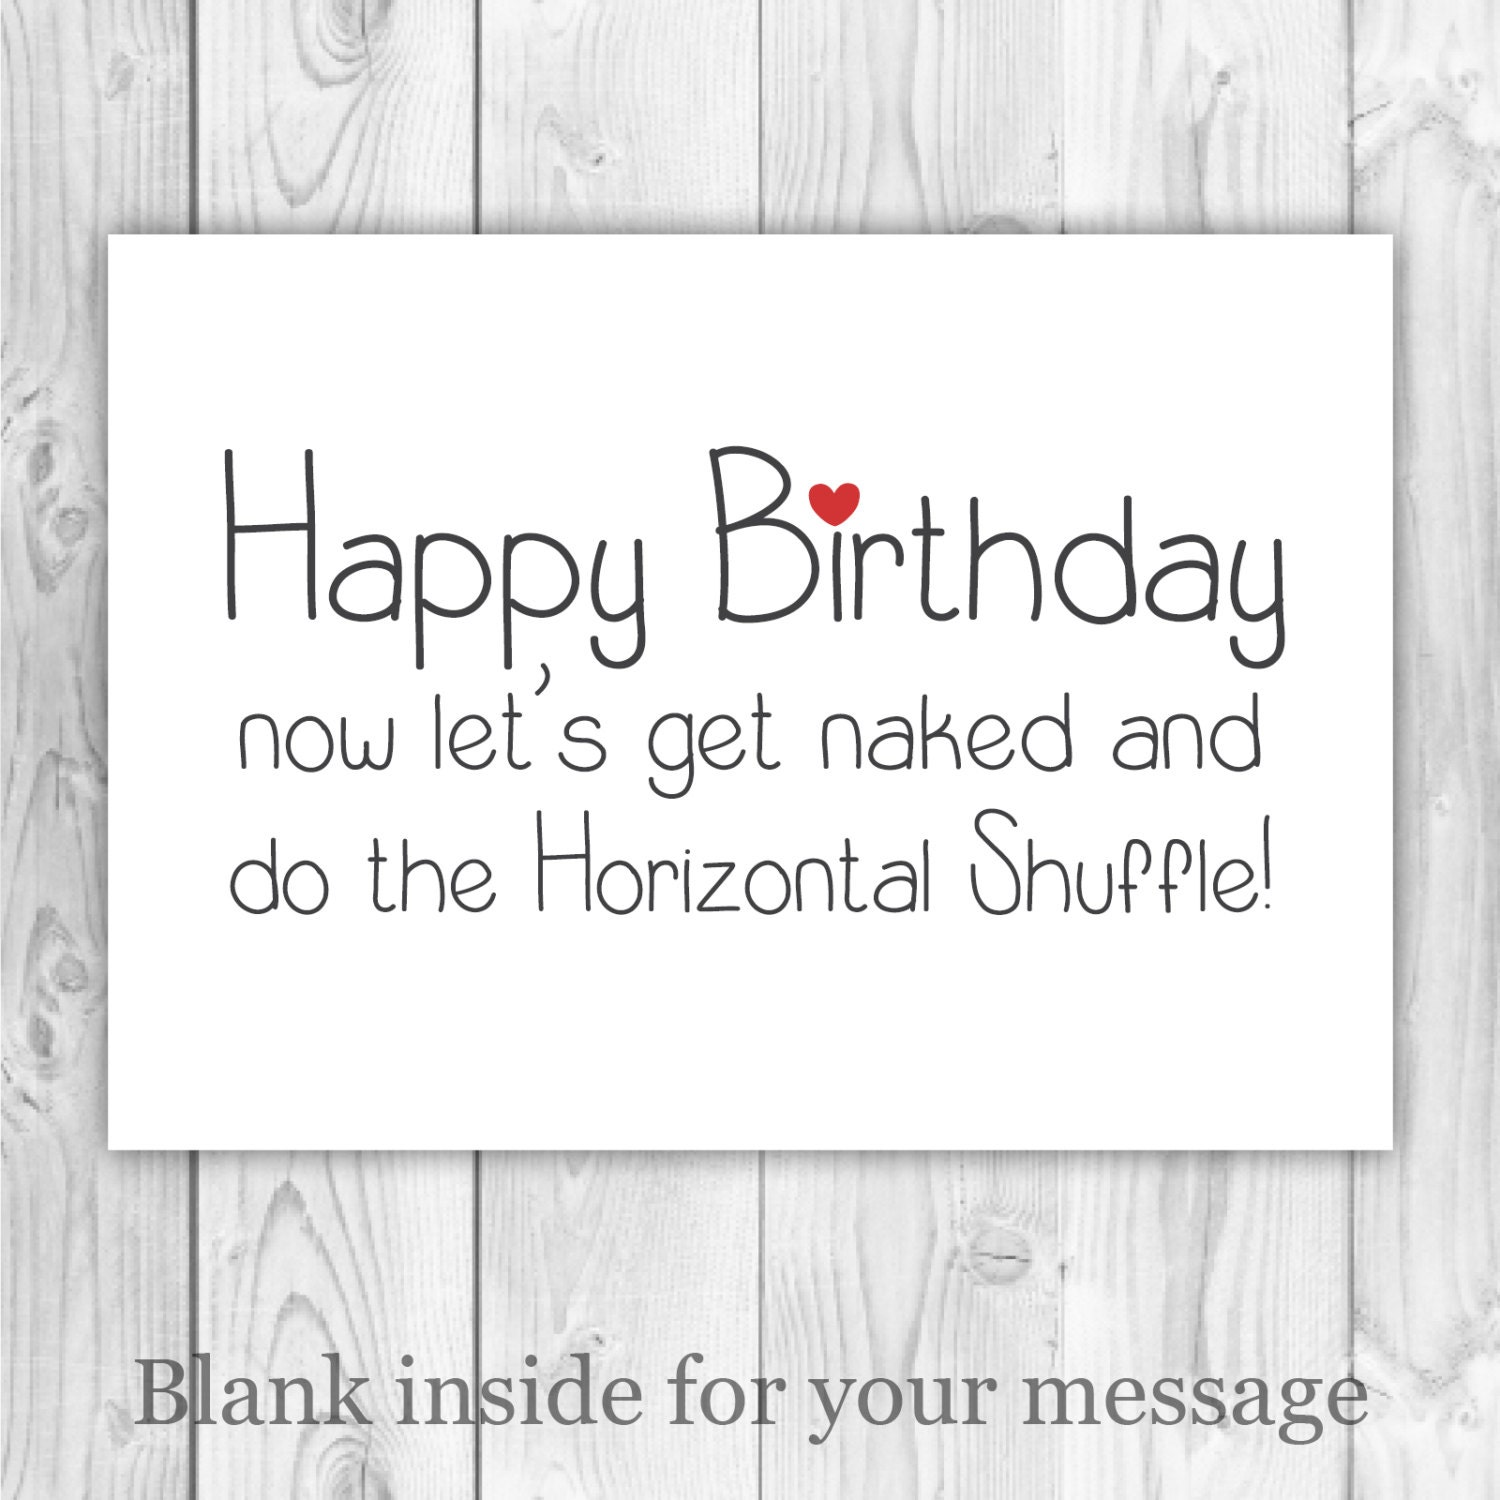 Luxury funny birthday card messages images eccleshallfc rude funny birthday card happy birthday now lets bookmarktalkfo Image collections